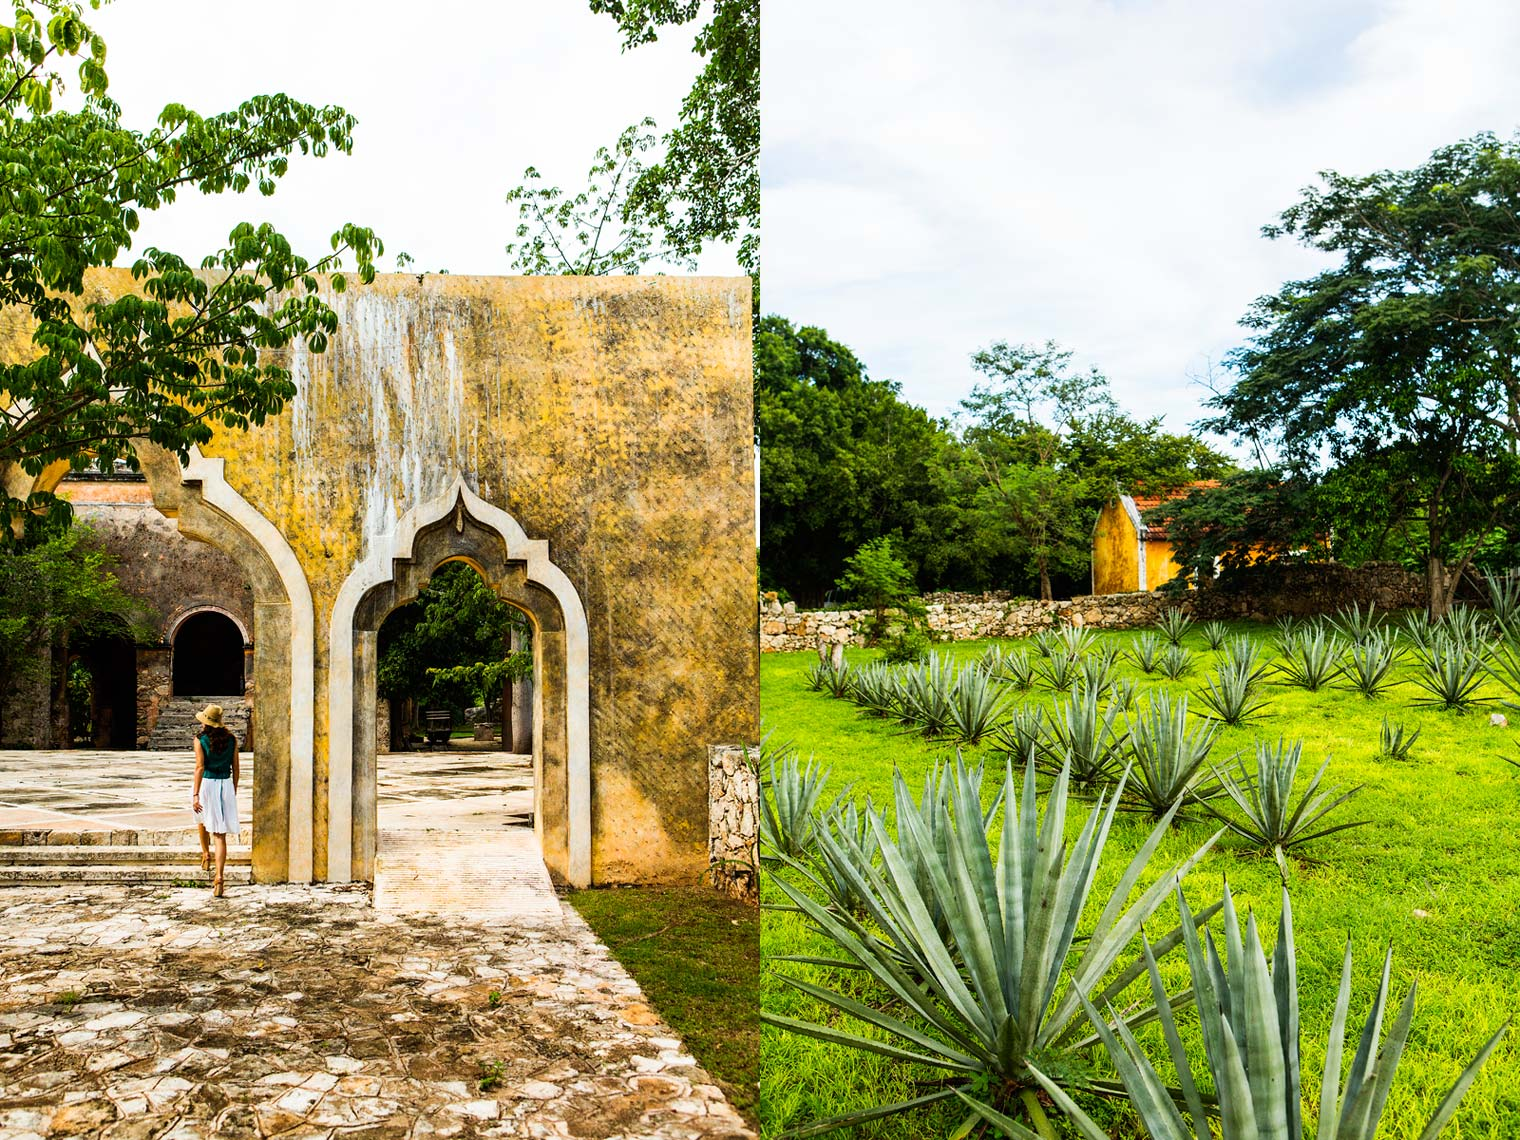 013-Chris-Hunt-Travel-Photography-Mexico-Yucatan-Hacienda-Ochil-0019